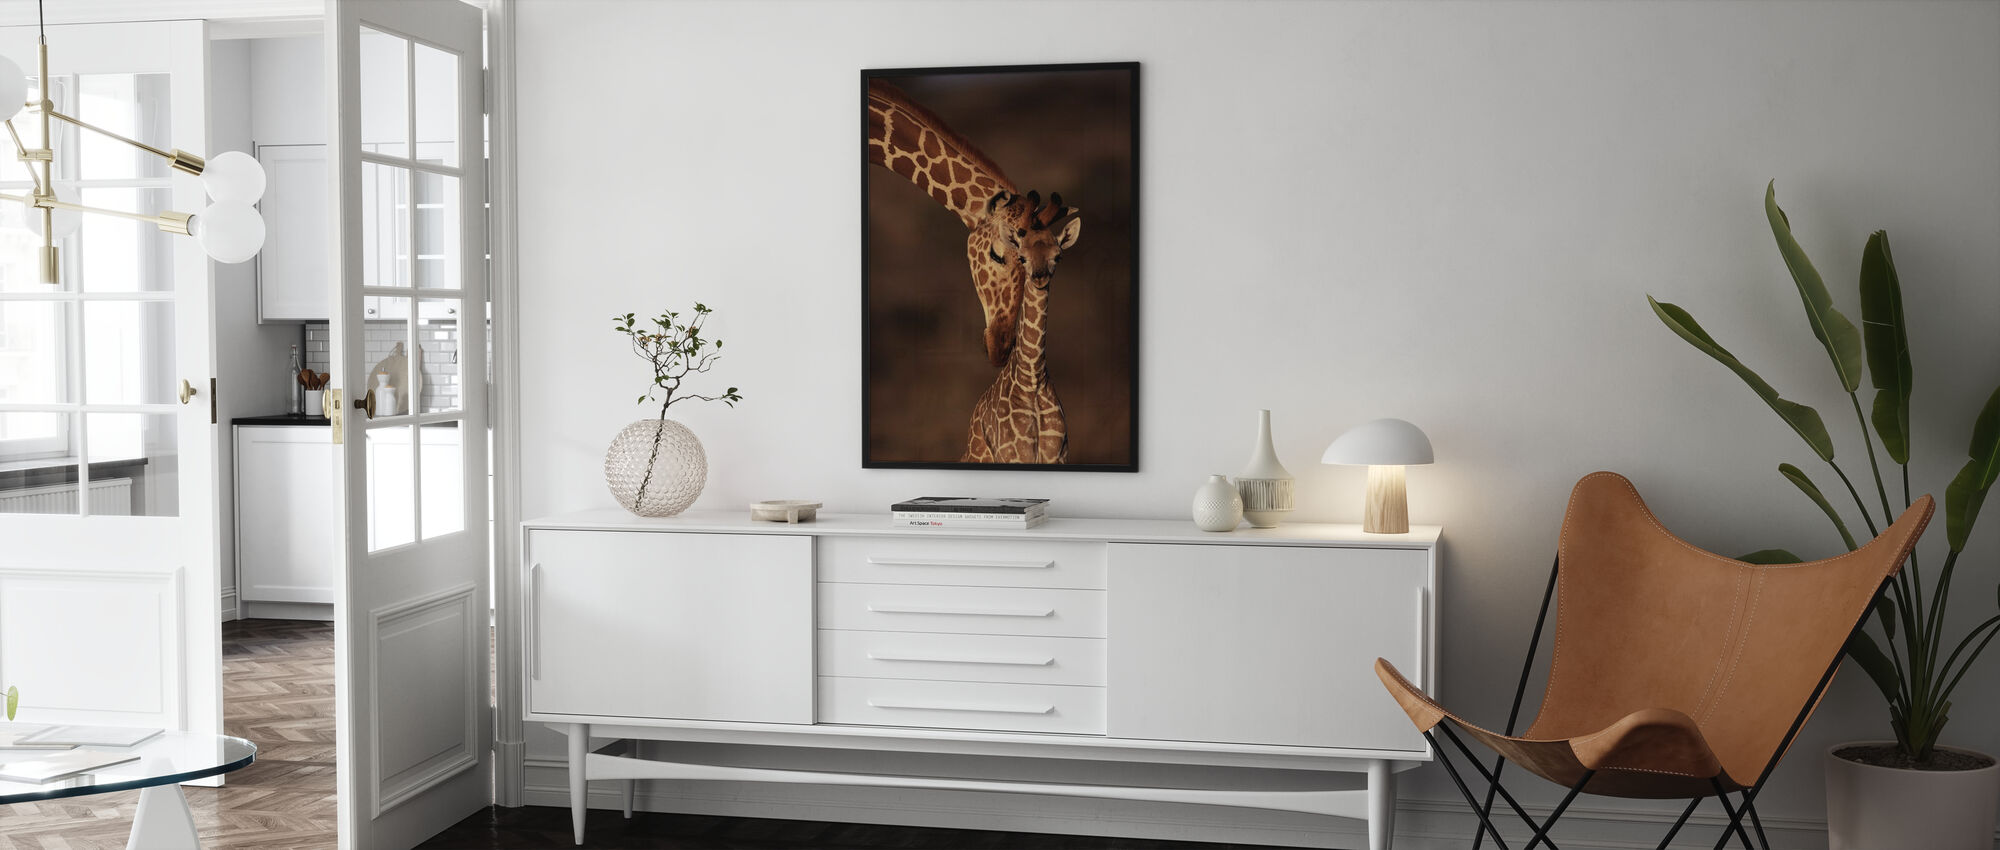 Giraffes - Framed print - Living Room